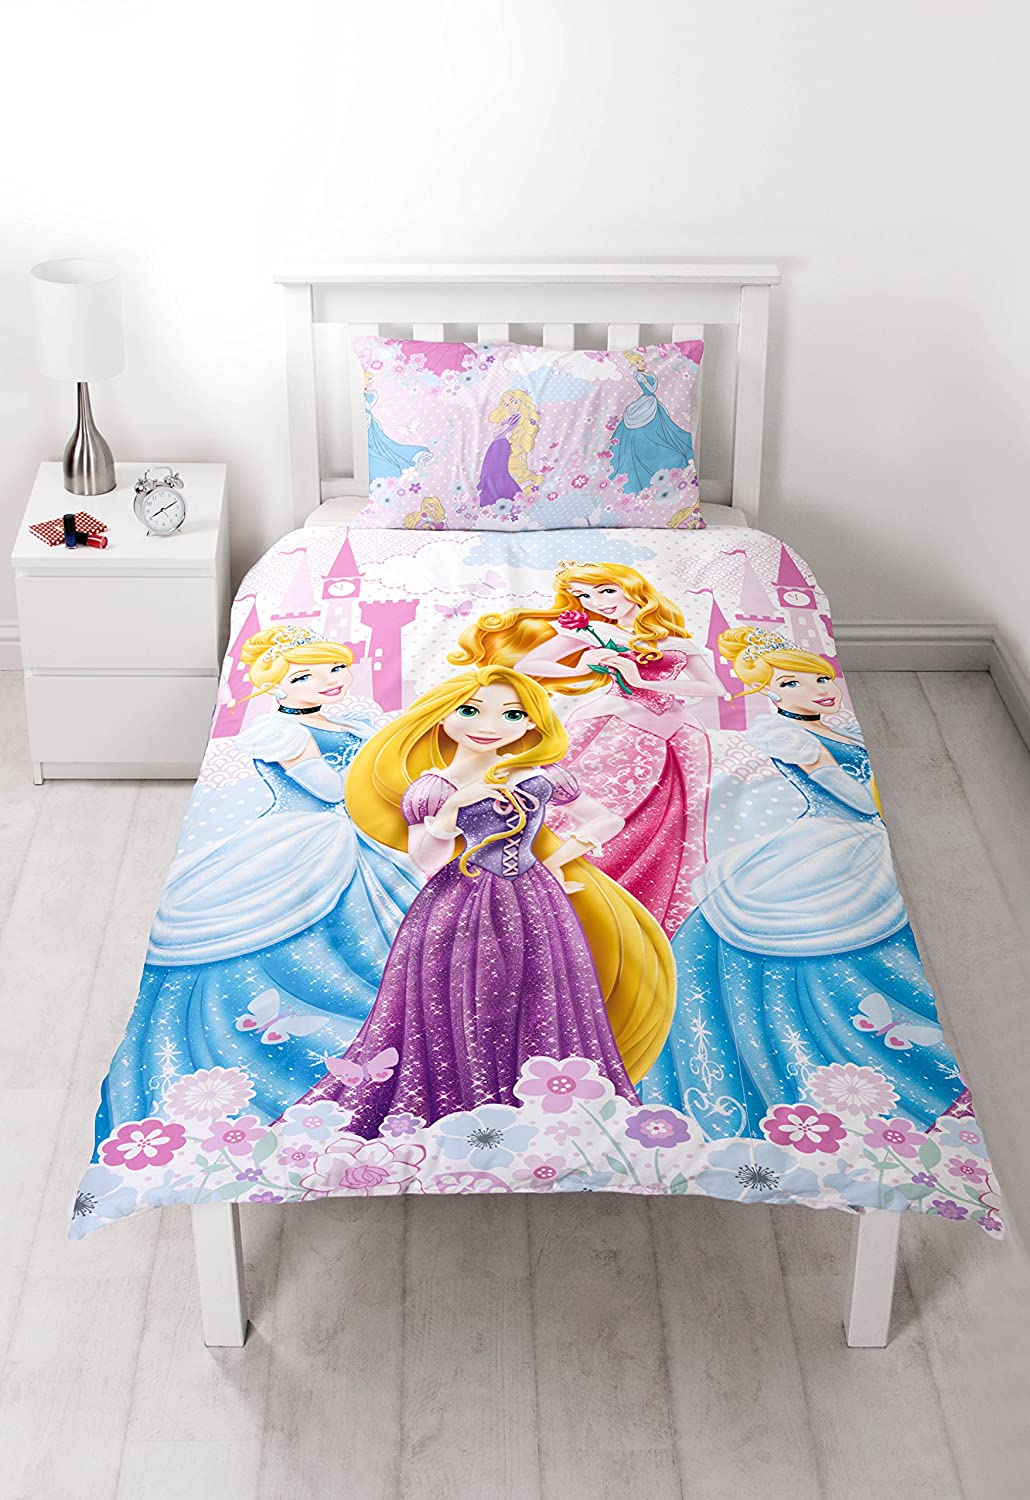 Time 4 Dreams Copripiumino.Single Disney Princess Dreams Duvet Cover Set Amazon Ca Home